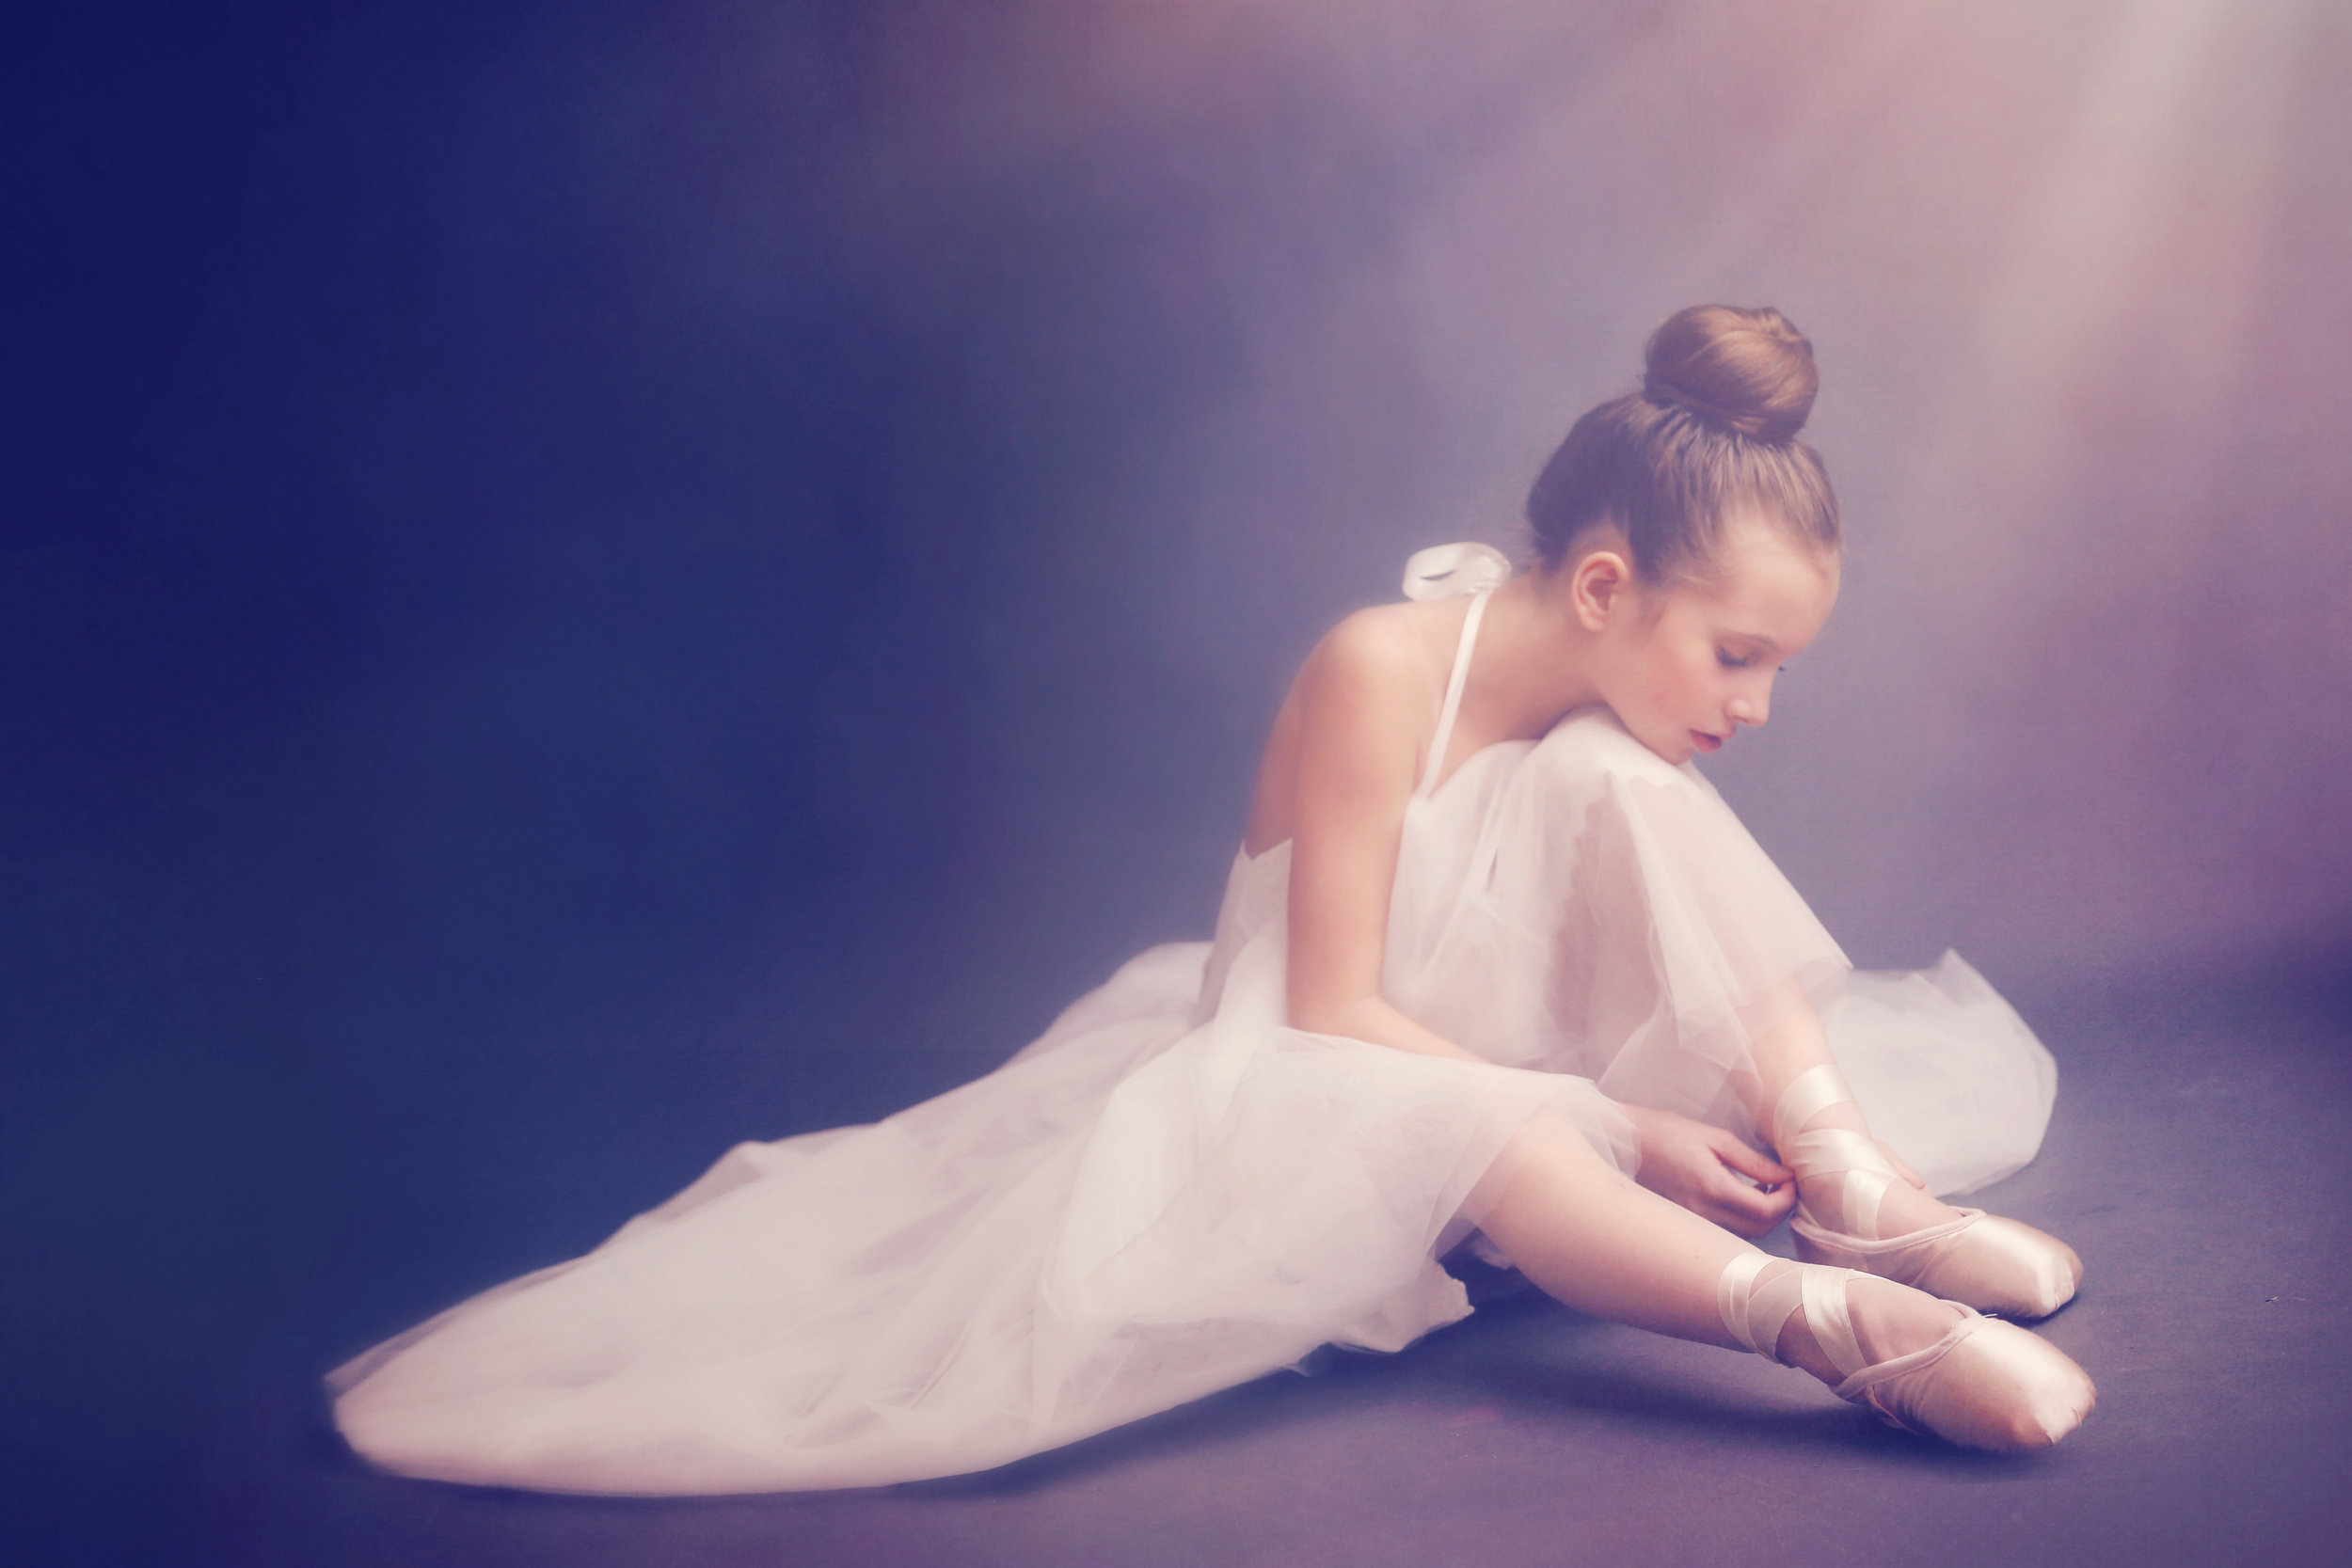 Ballet Dance Photographer in Buffalo, NY